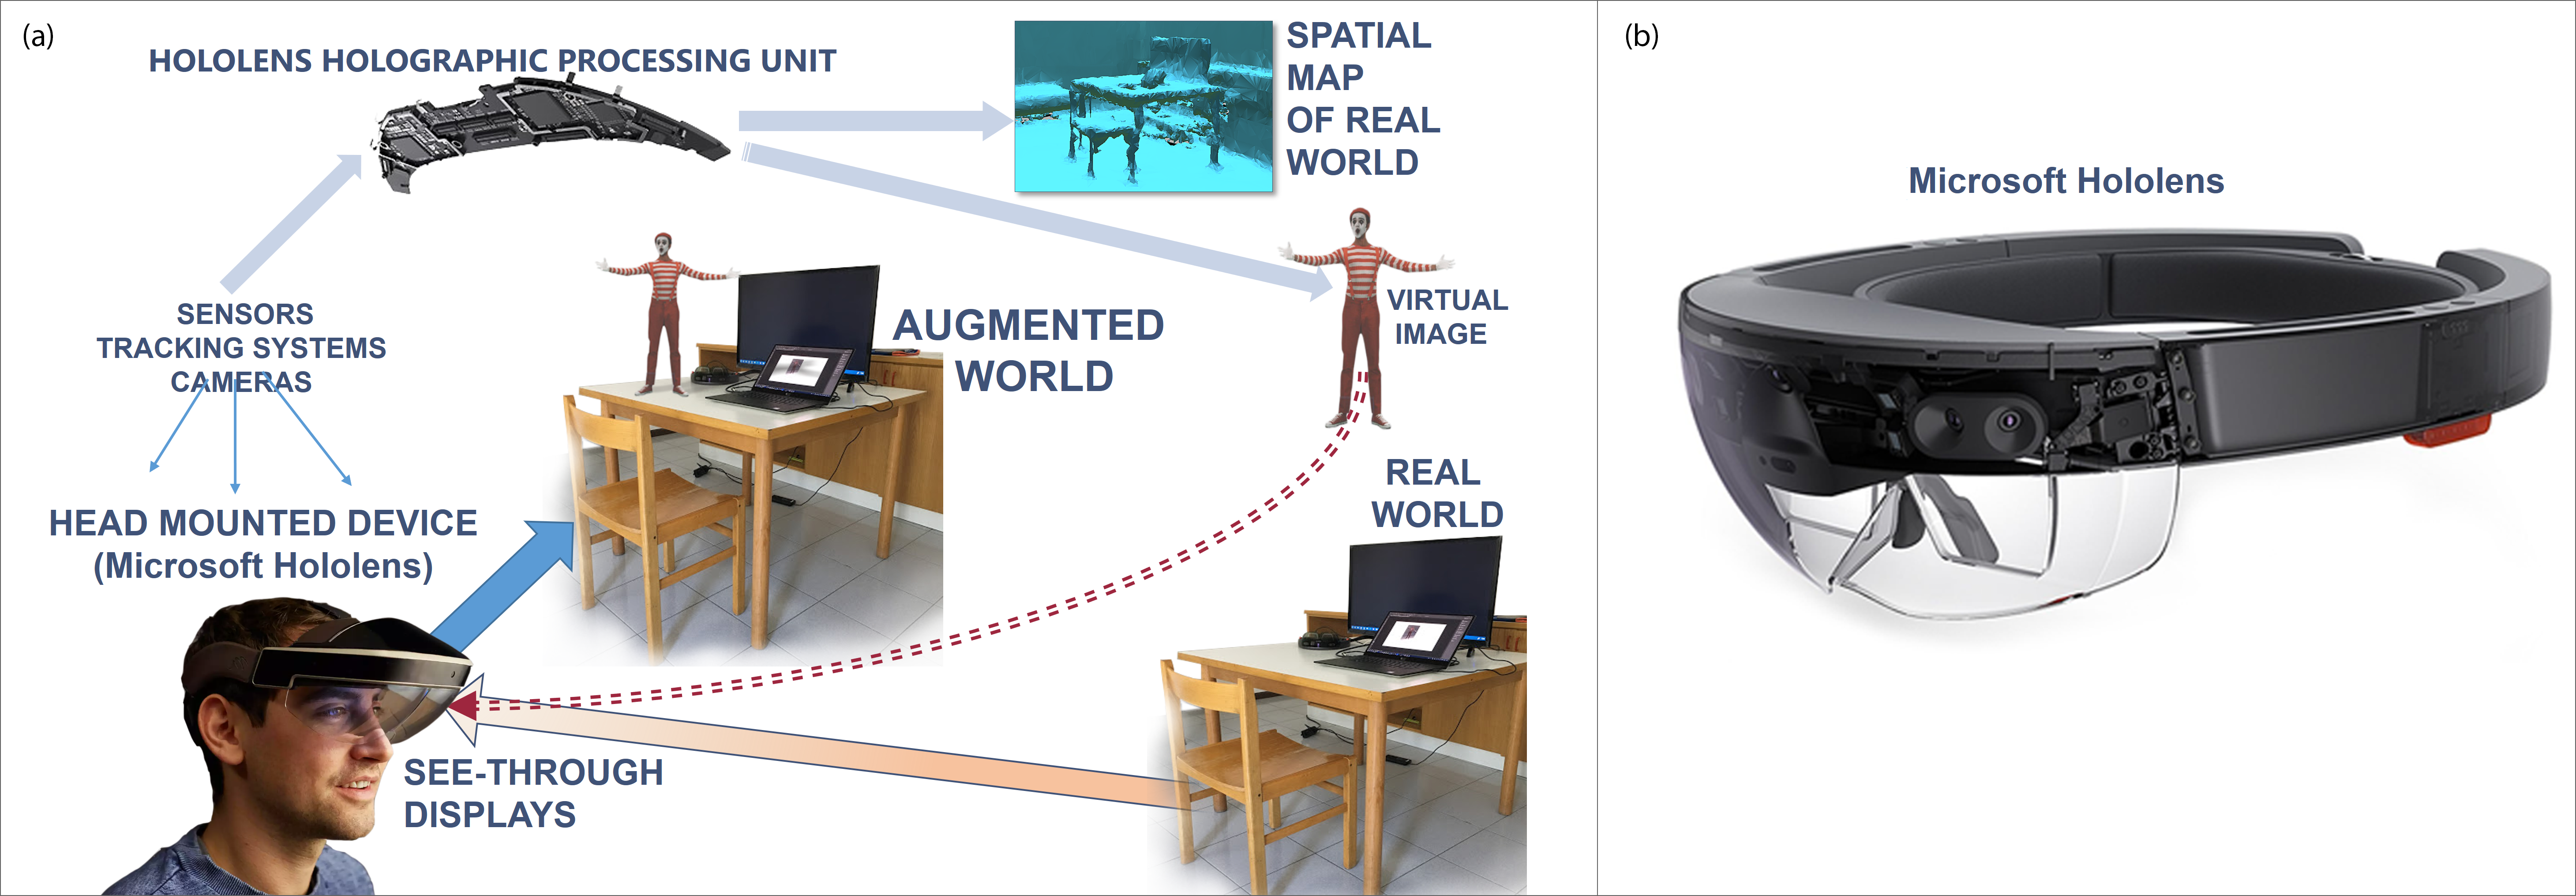 Figure 1. A conceptual diagram of an AR system (a) with a head-mounted device and see-through displays